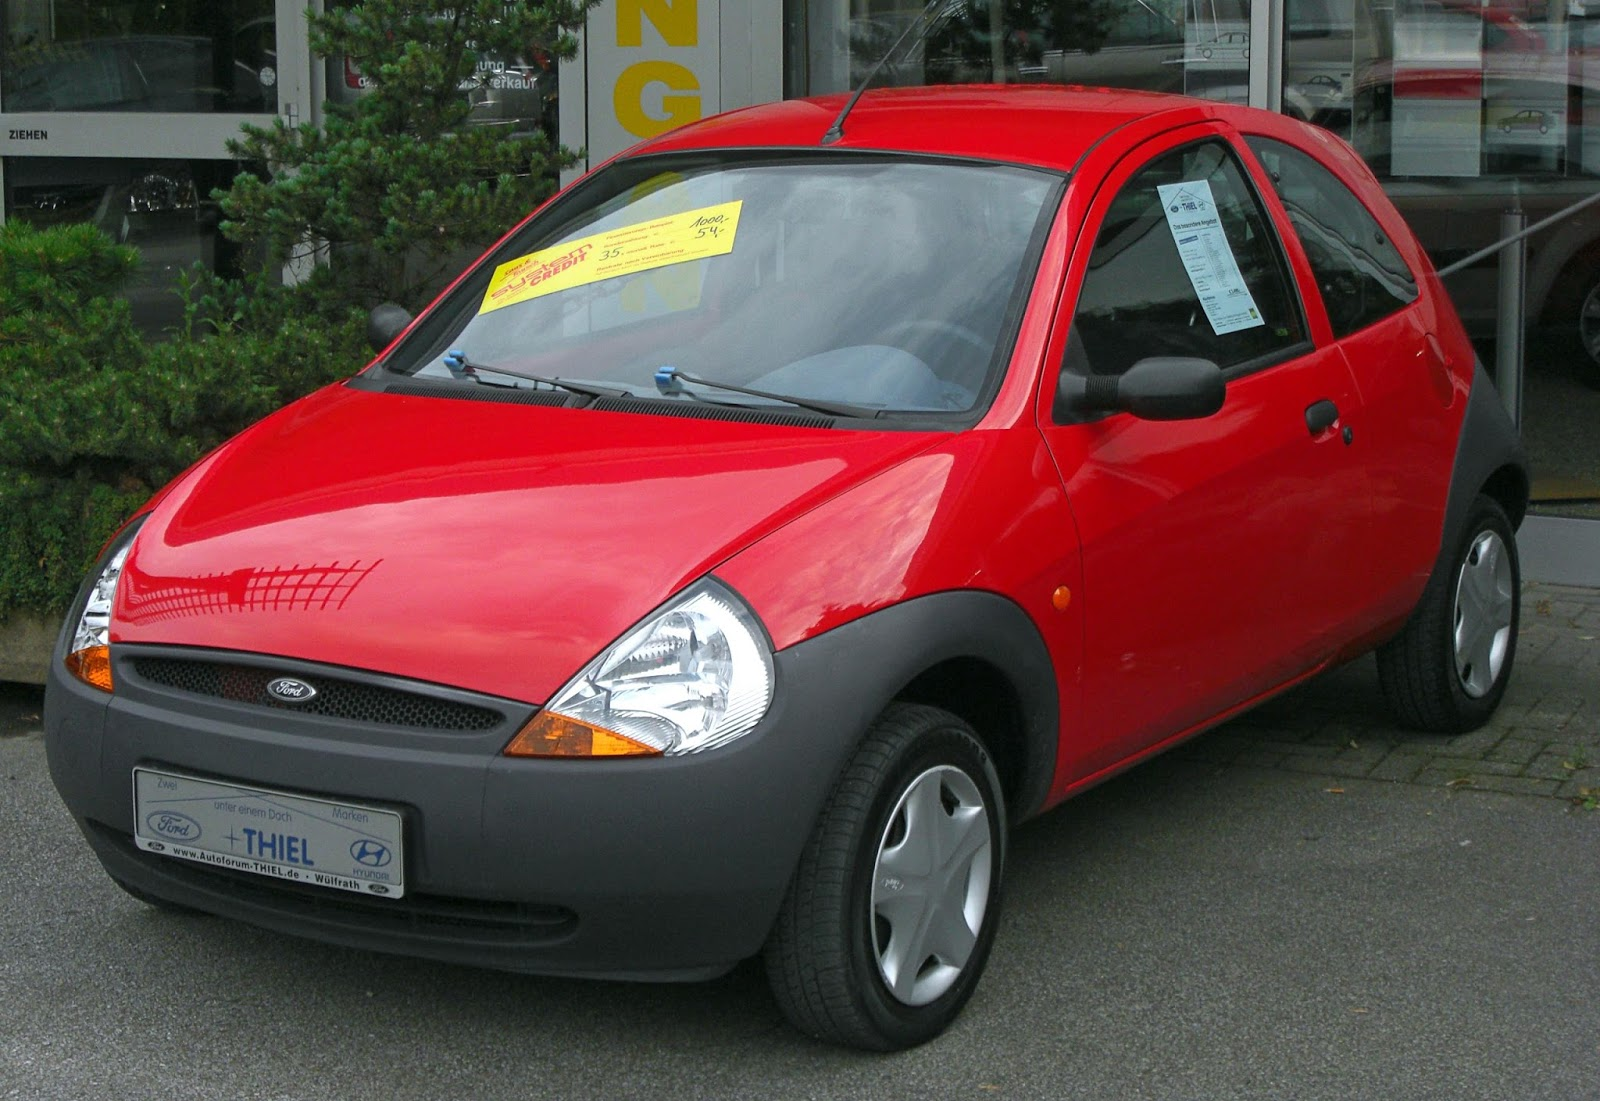 ford ka essay Detailed car specs: 2014 ford fiesta find specifications for every 2014 ford fiesta: gas mileage, engine, performance, warranty, equipment and more.